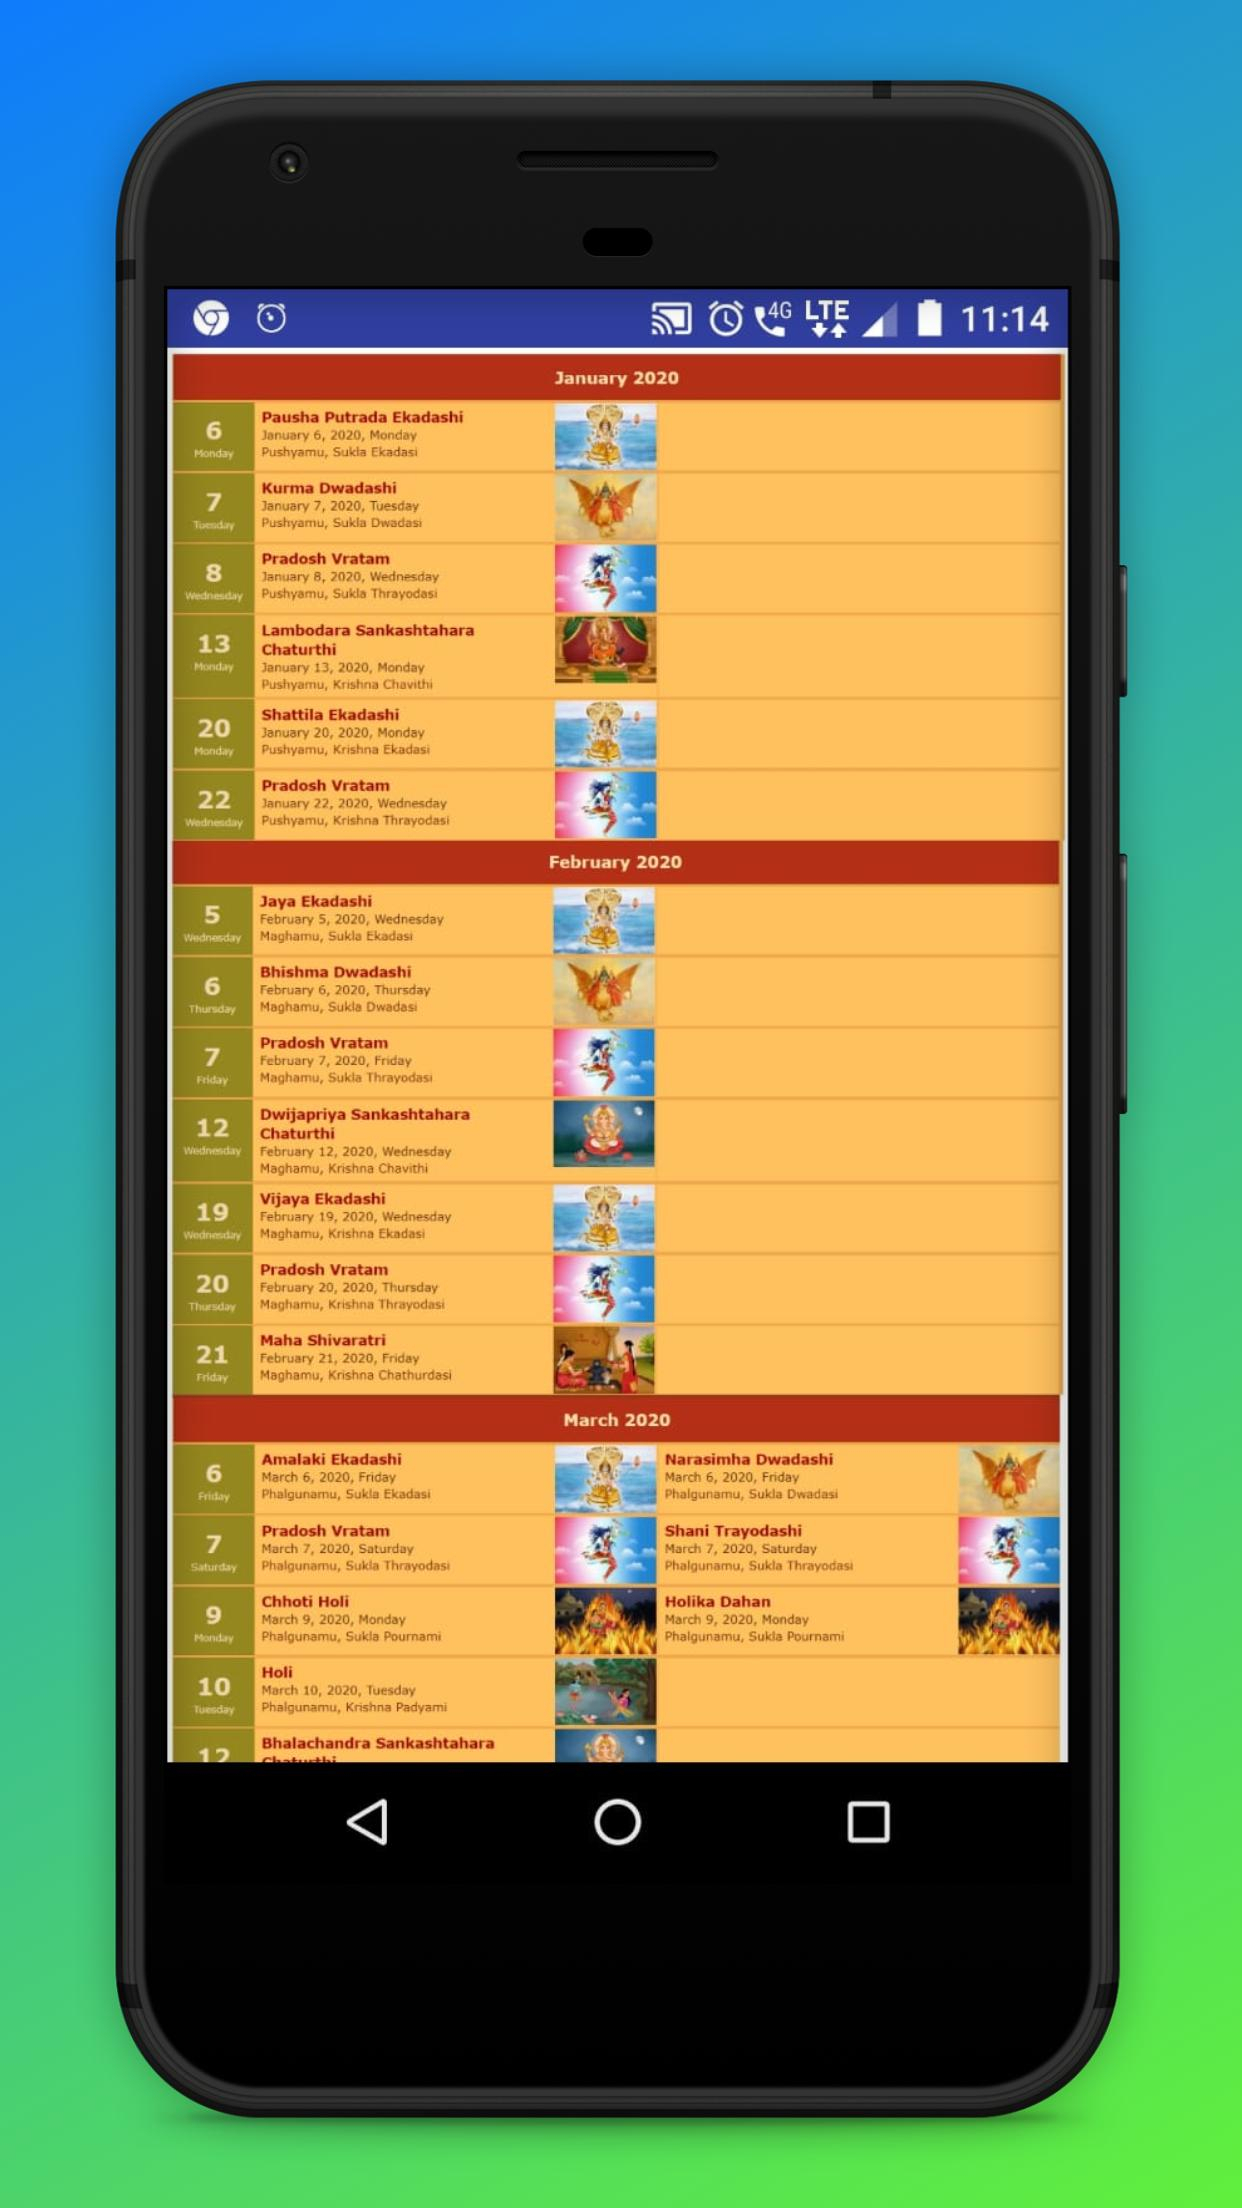 Telugu Calendar Panchang 2020 For Android - Apk Download